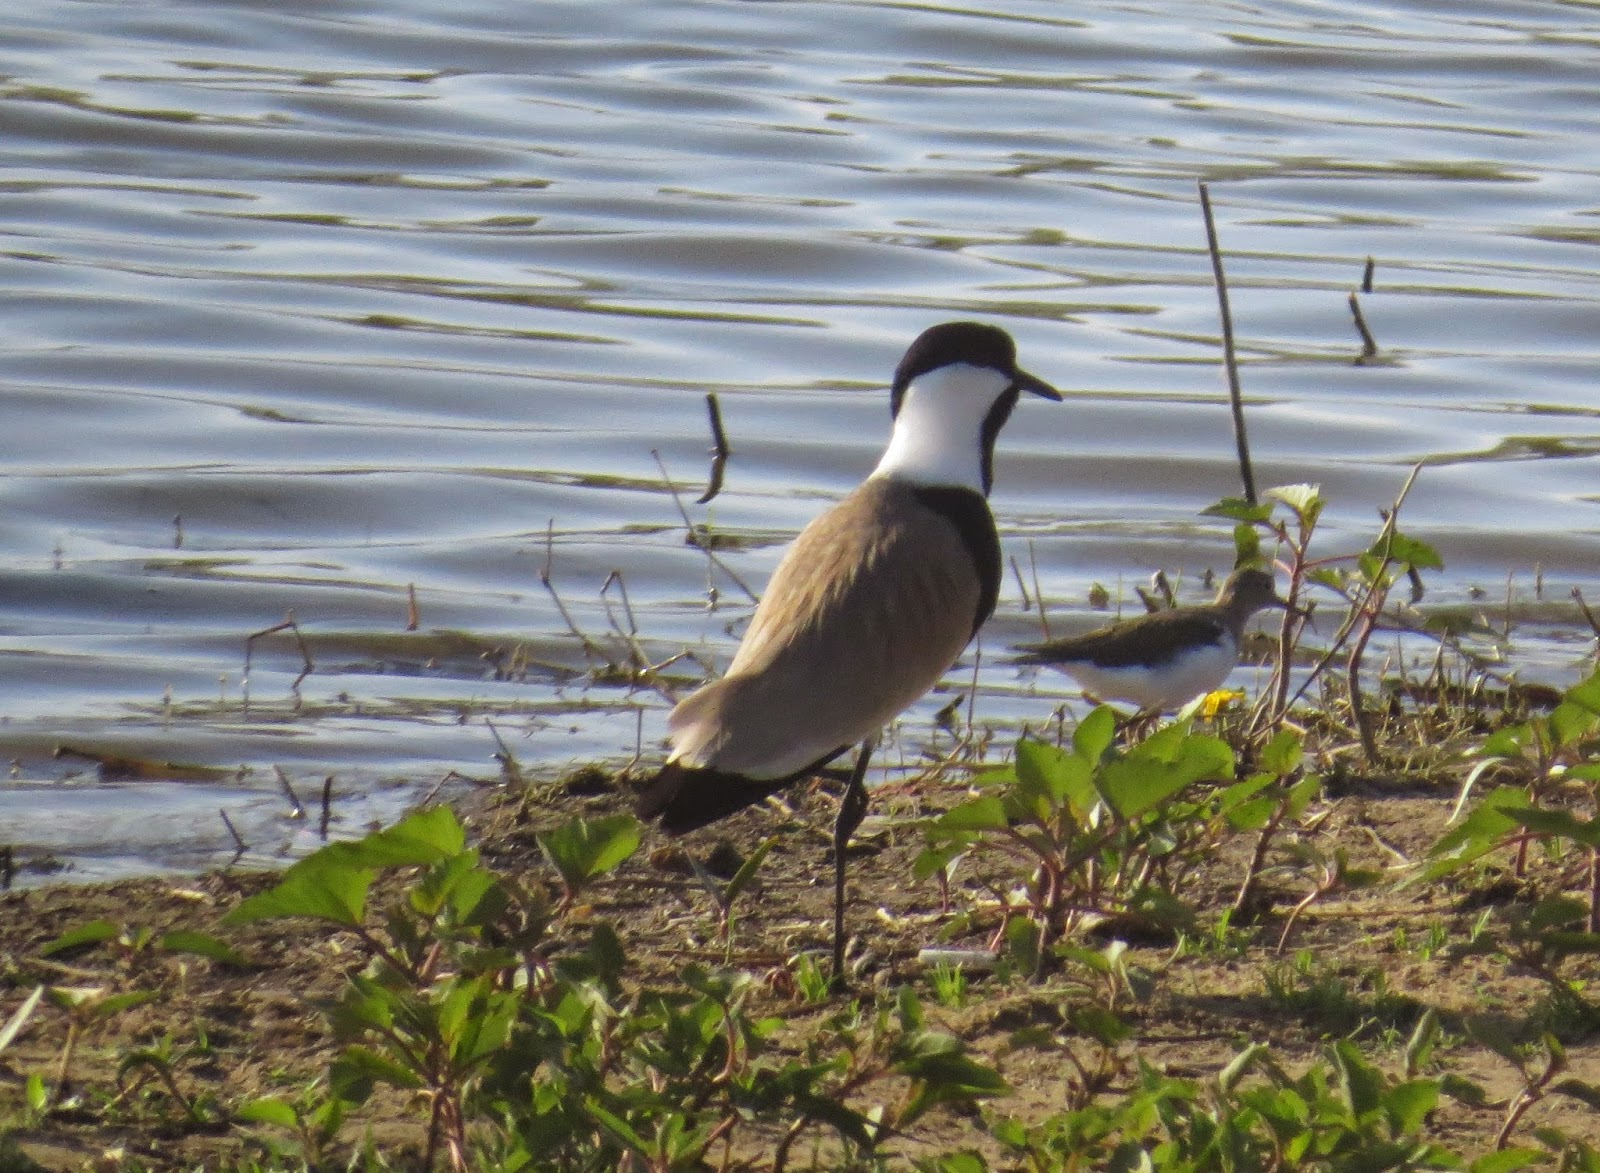 Spur-winged lapwing and Common sandpiper behind